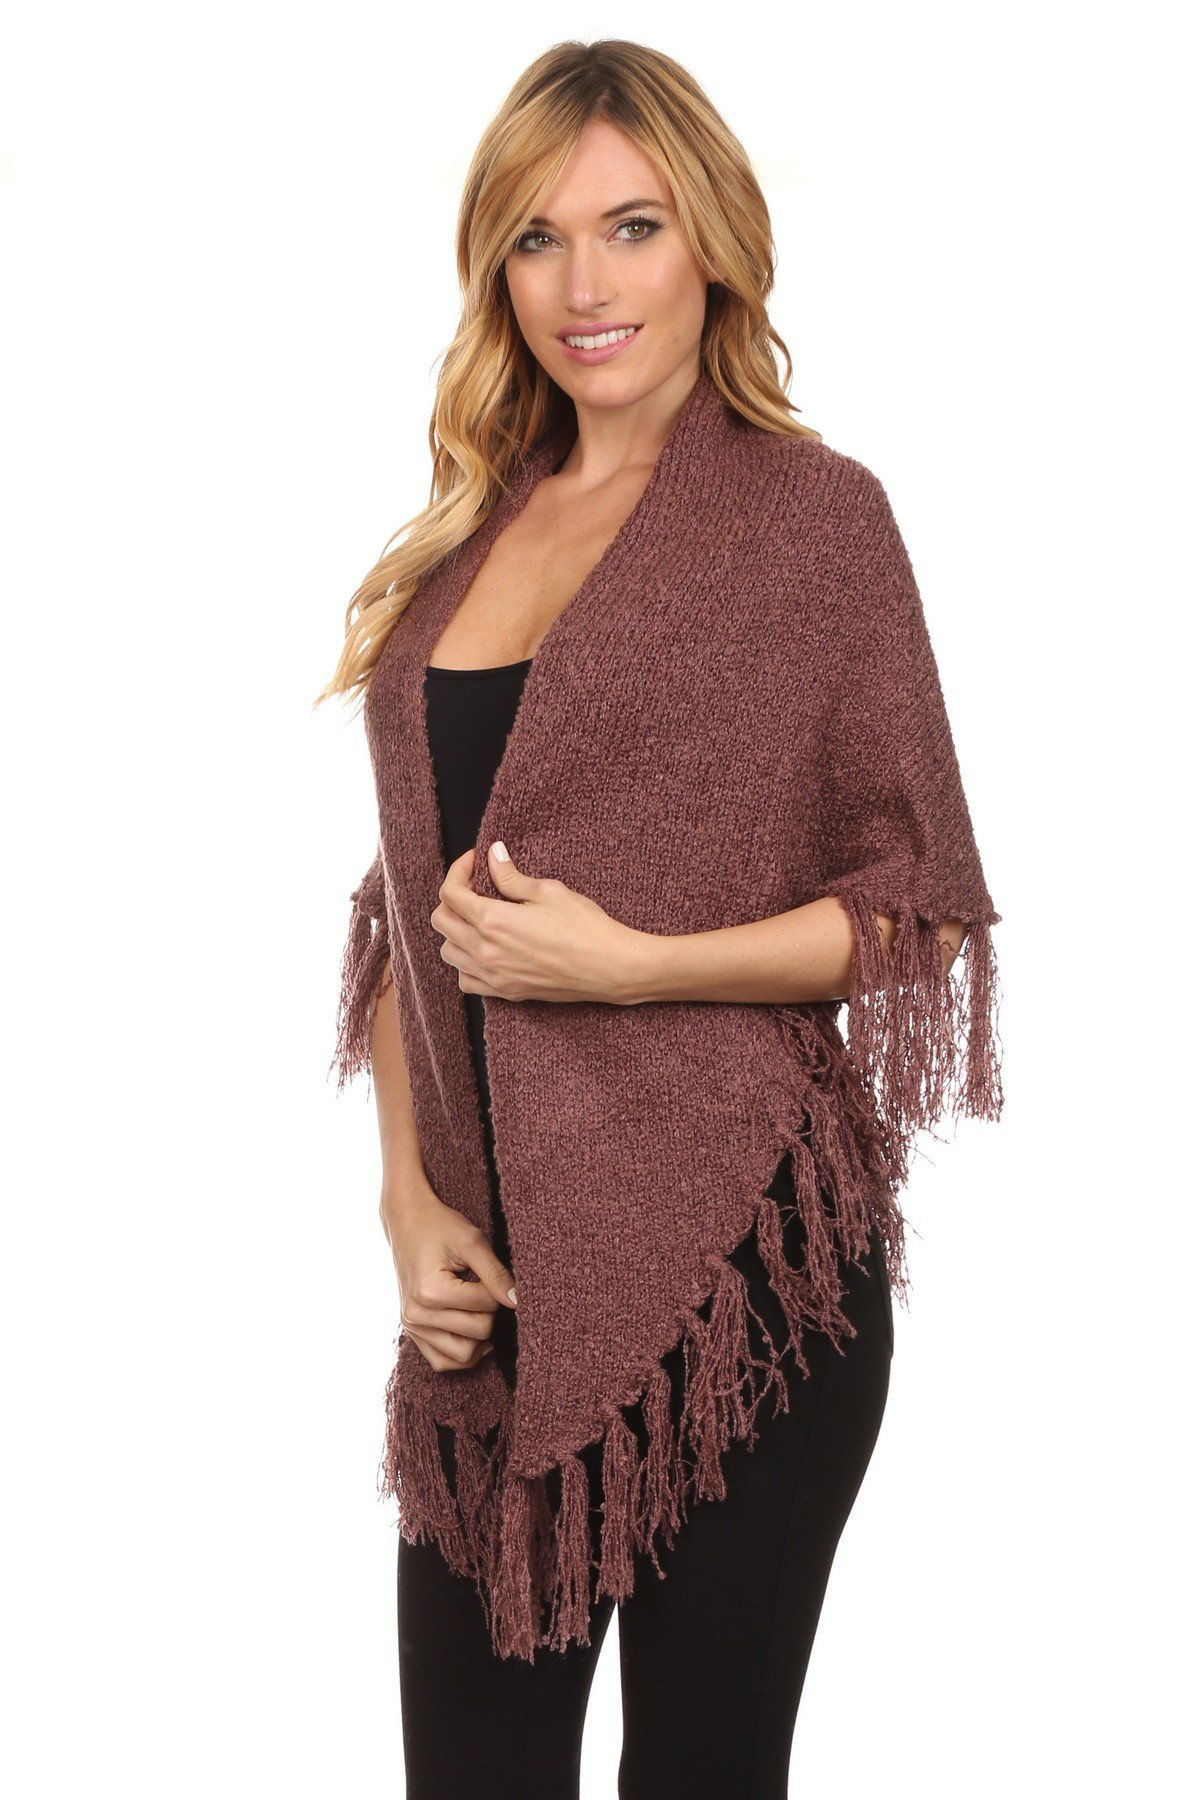 ICONOFLASH Women's Casual Sweater Knit Fringed Fashion Scarf Wrap, Mauve